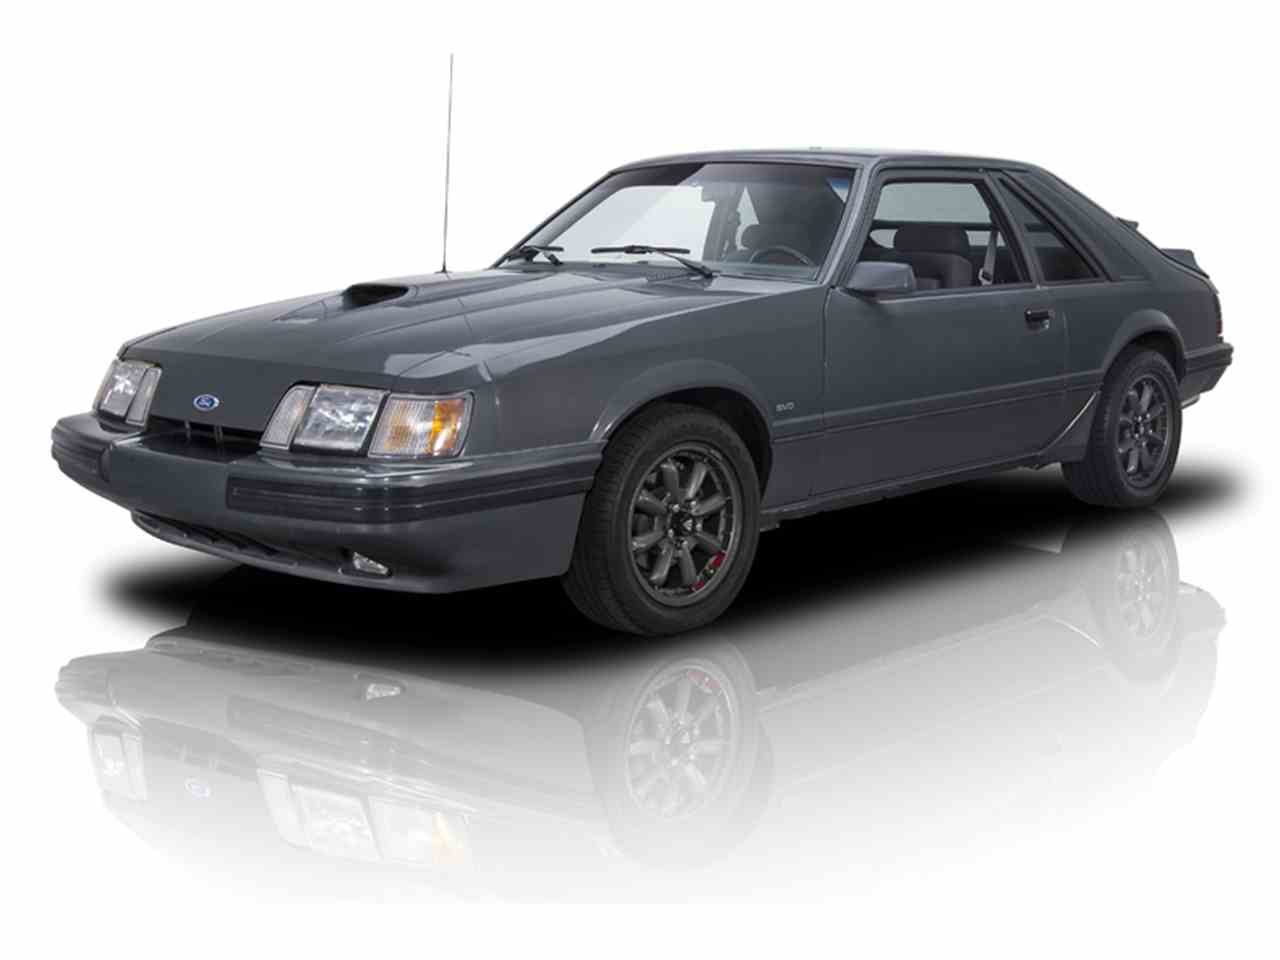 1986 Ford Mustang SVO for Sale - CC-1017723